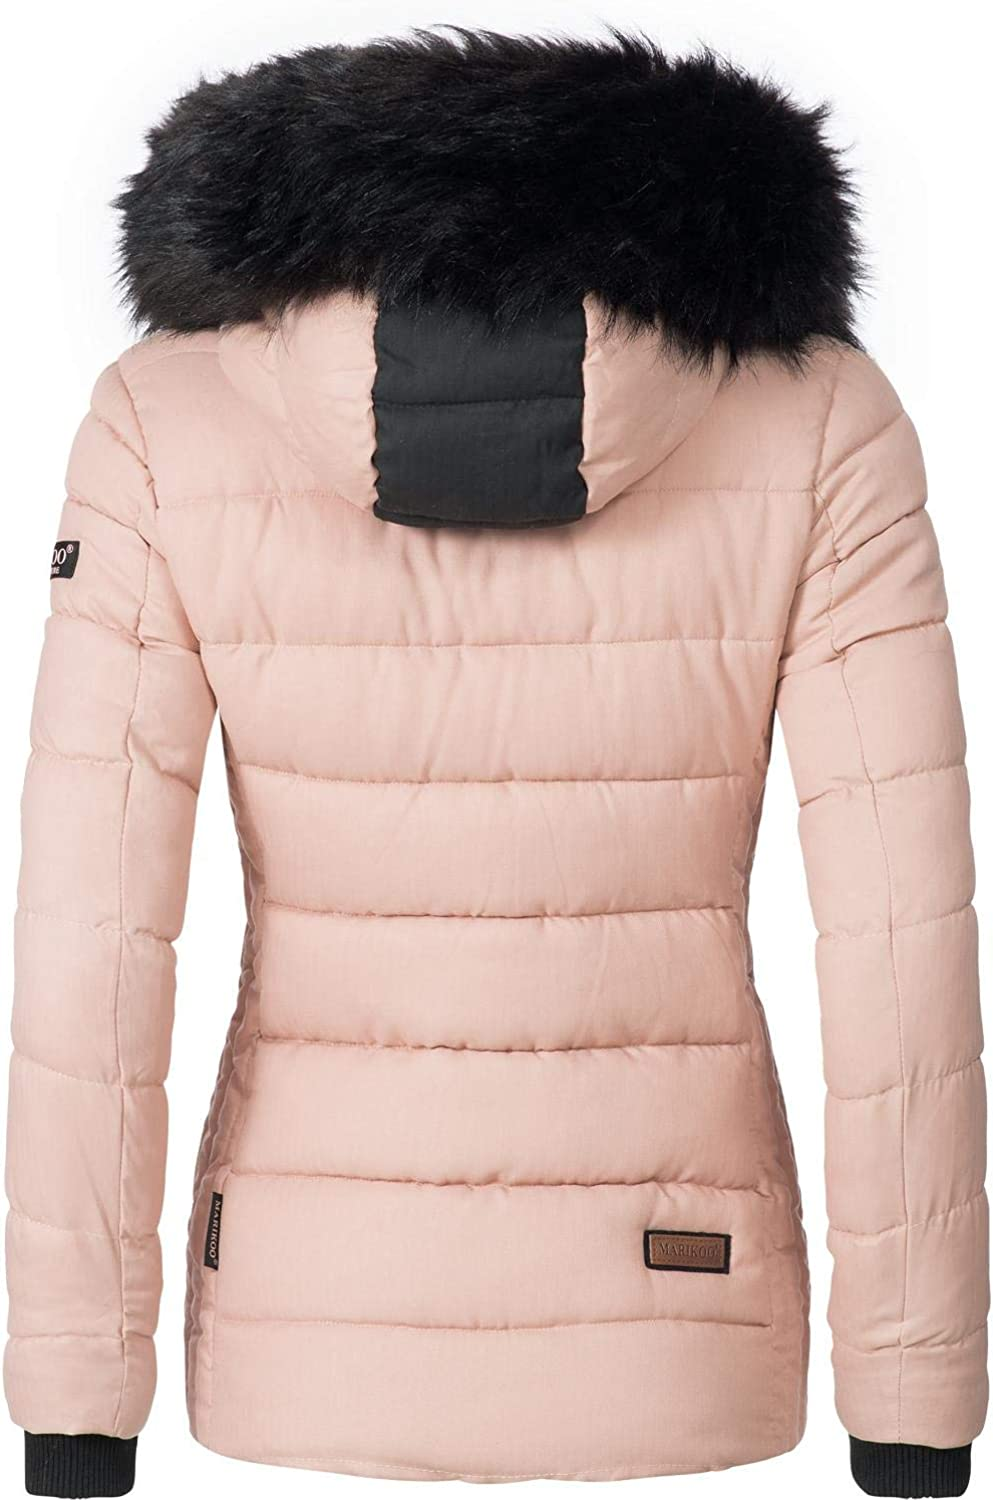 Marikoo Unique Ladies Winter Puffer Jacket XS-XXL Rose